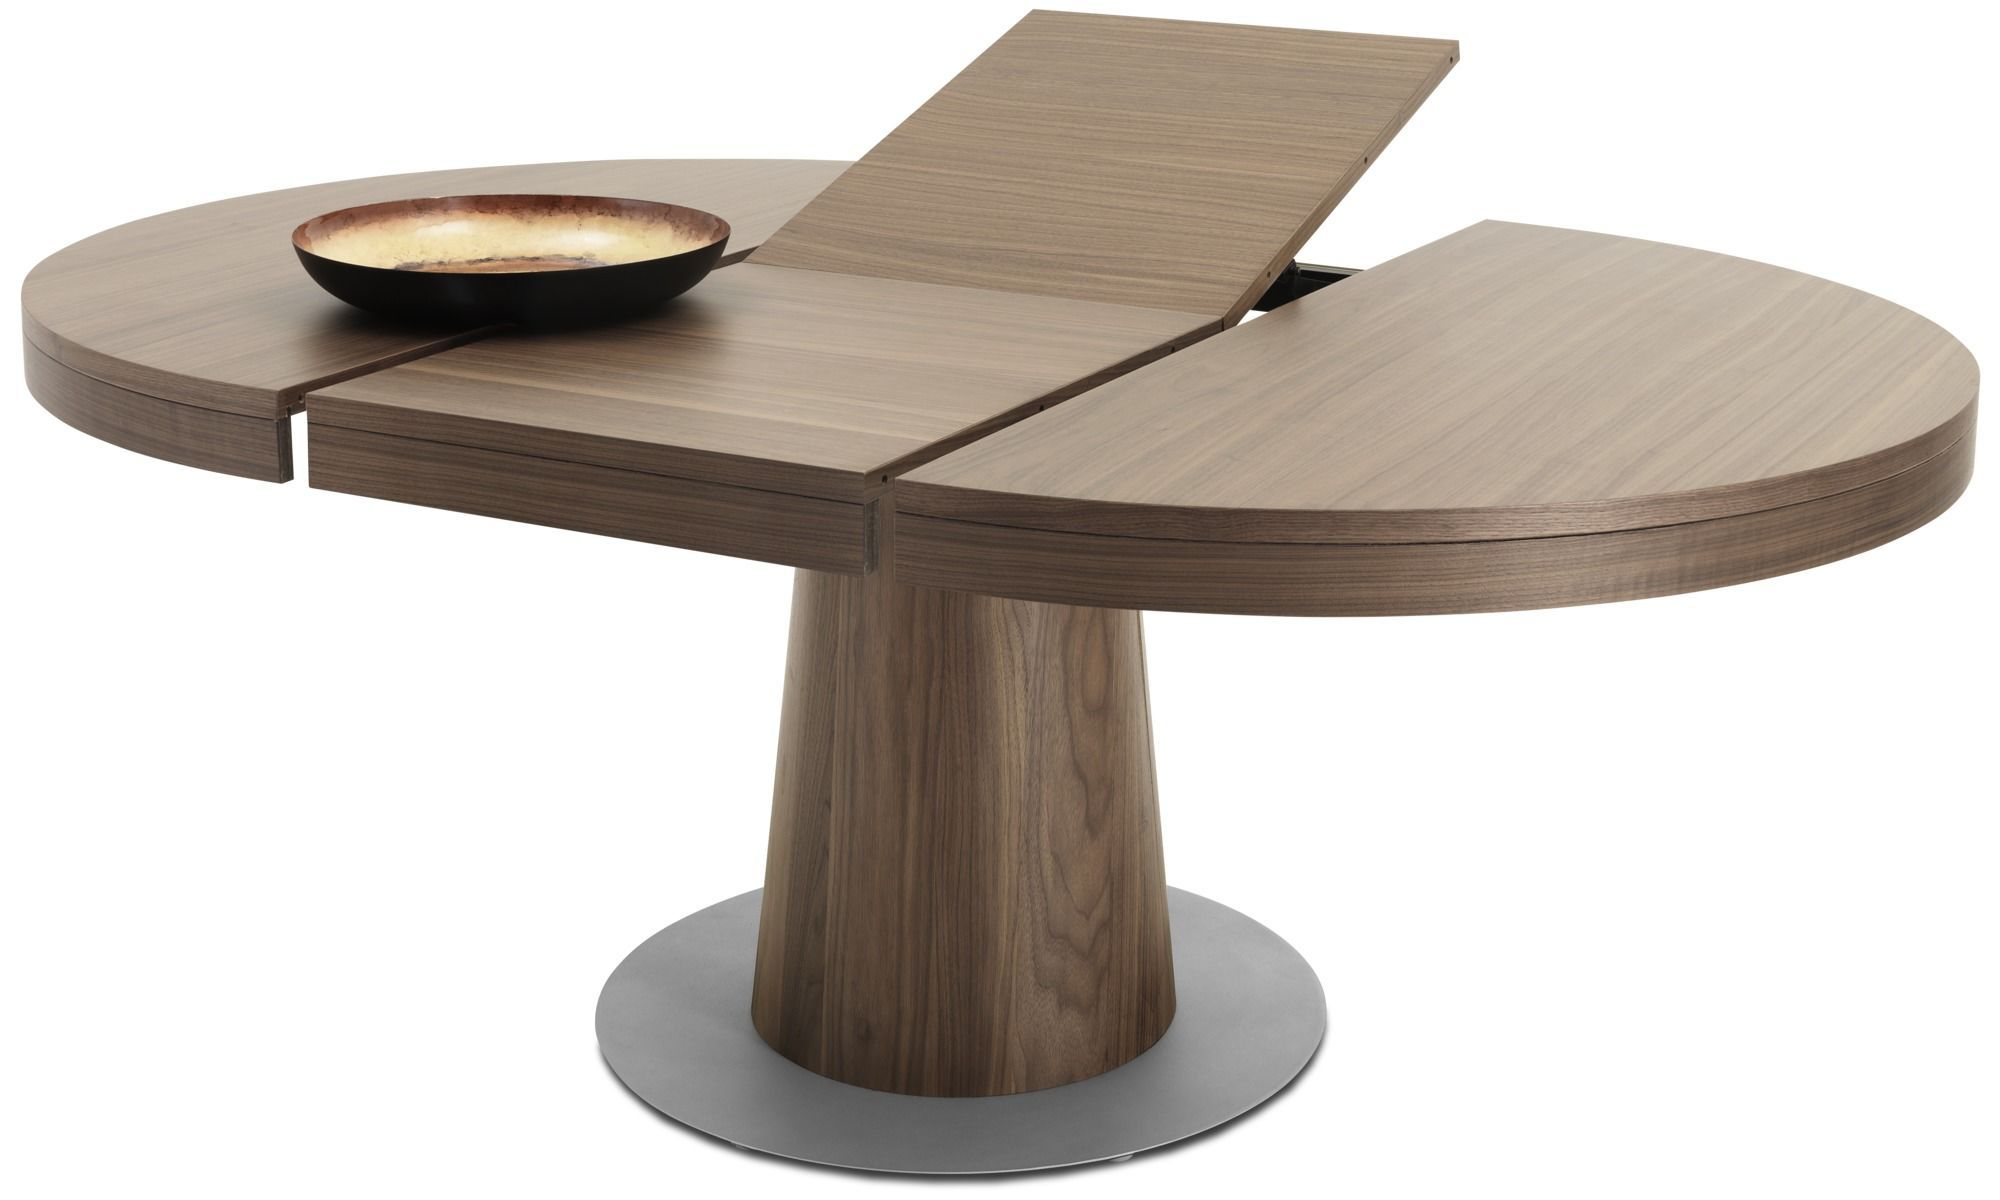 Granada Table With Supplementary Tabletop Round Extendable Dining Table Circle Dining Table Round Dining Table Modern